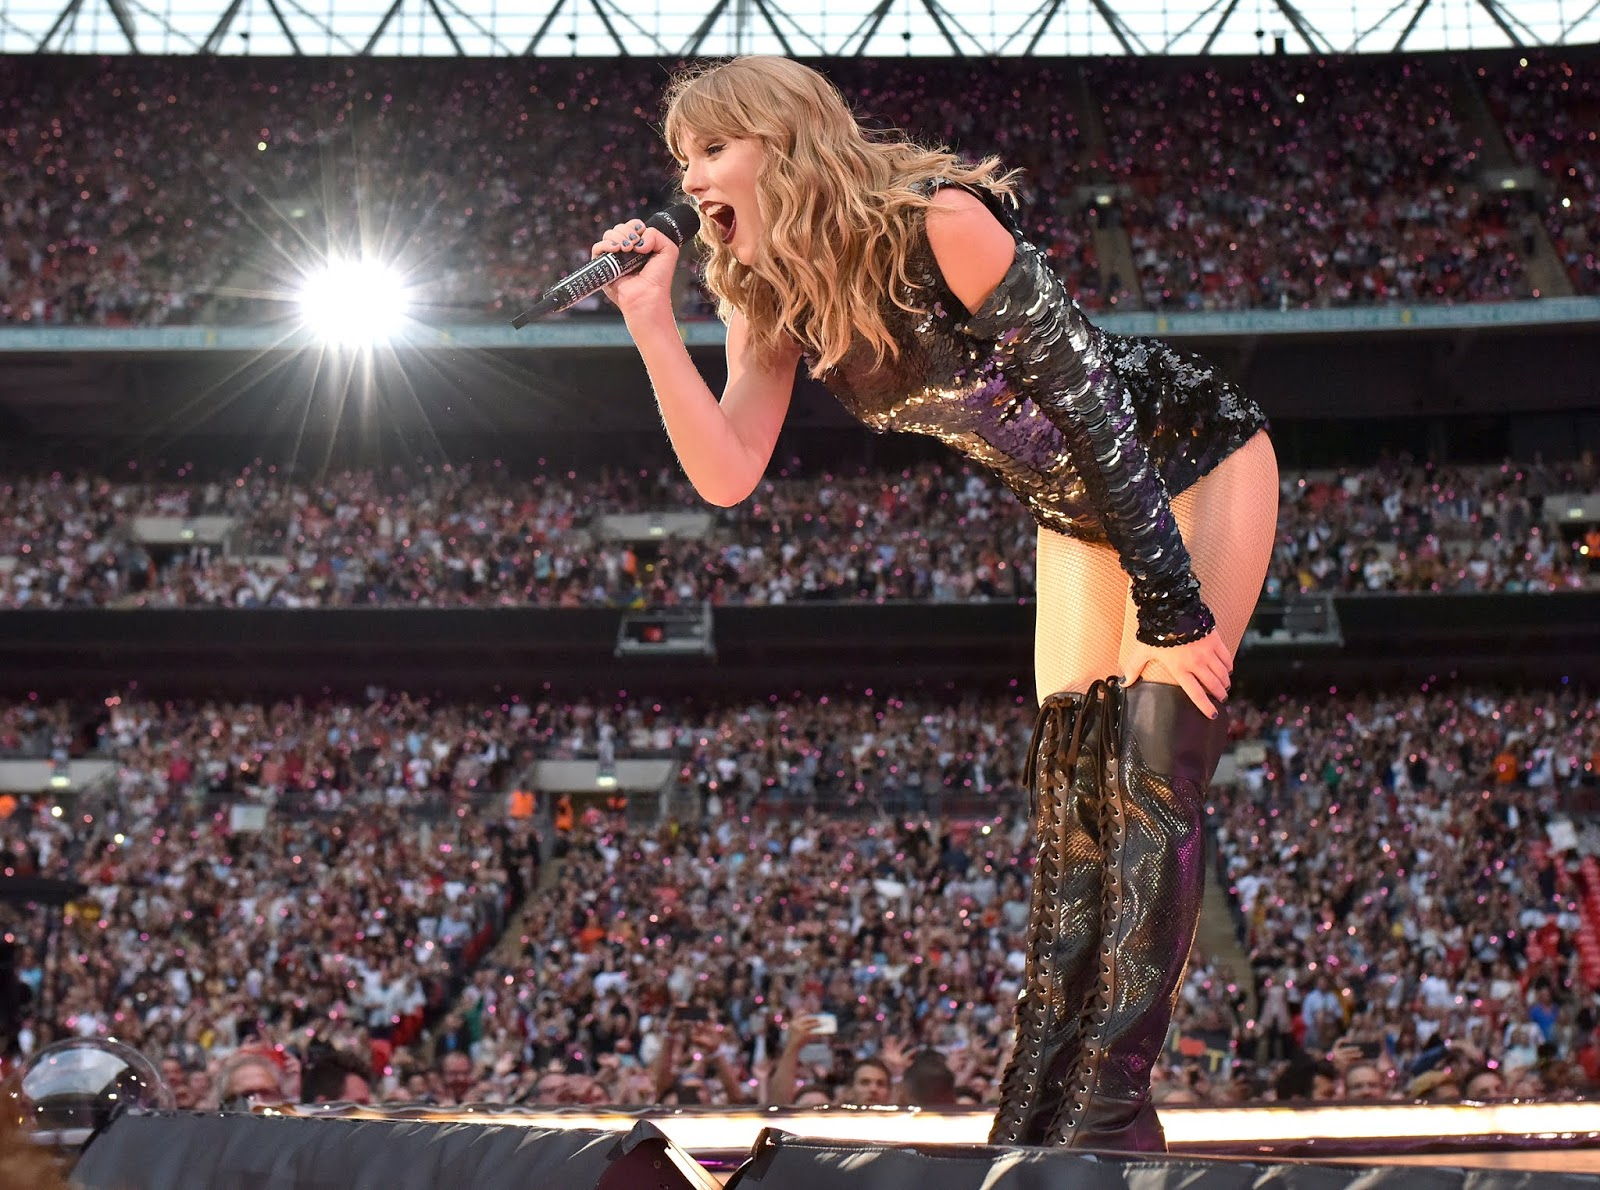 Taylor Swift at Wembley Stadium in June of 2018. Photo credit: Gareth Cattermole/TAS18/Getty Images